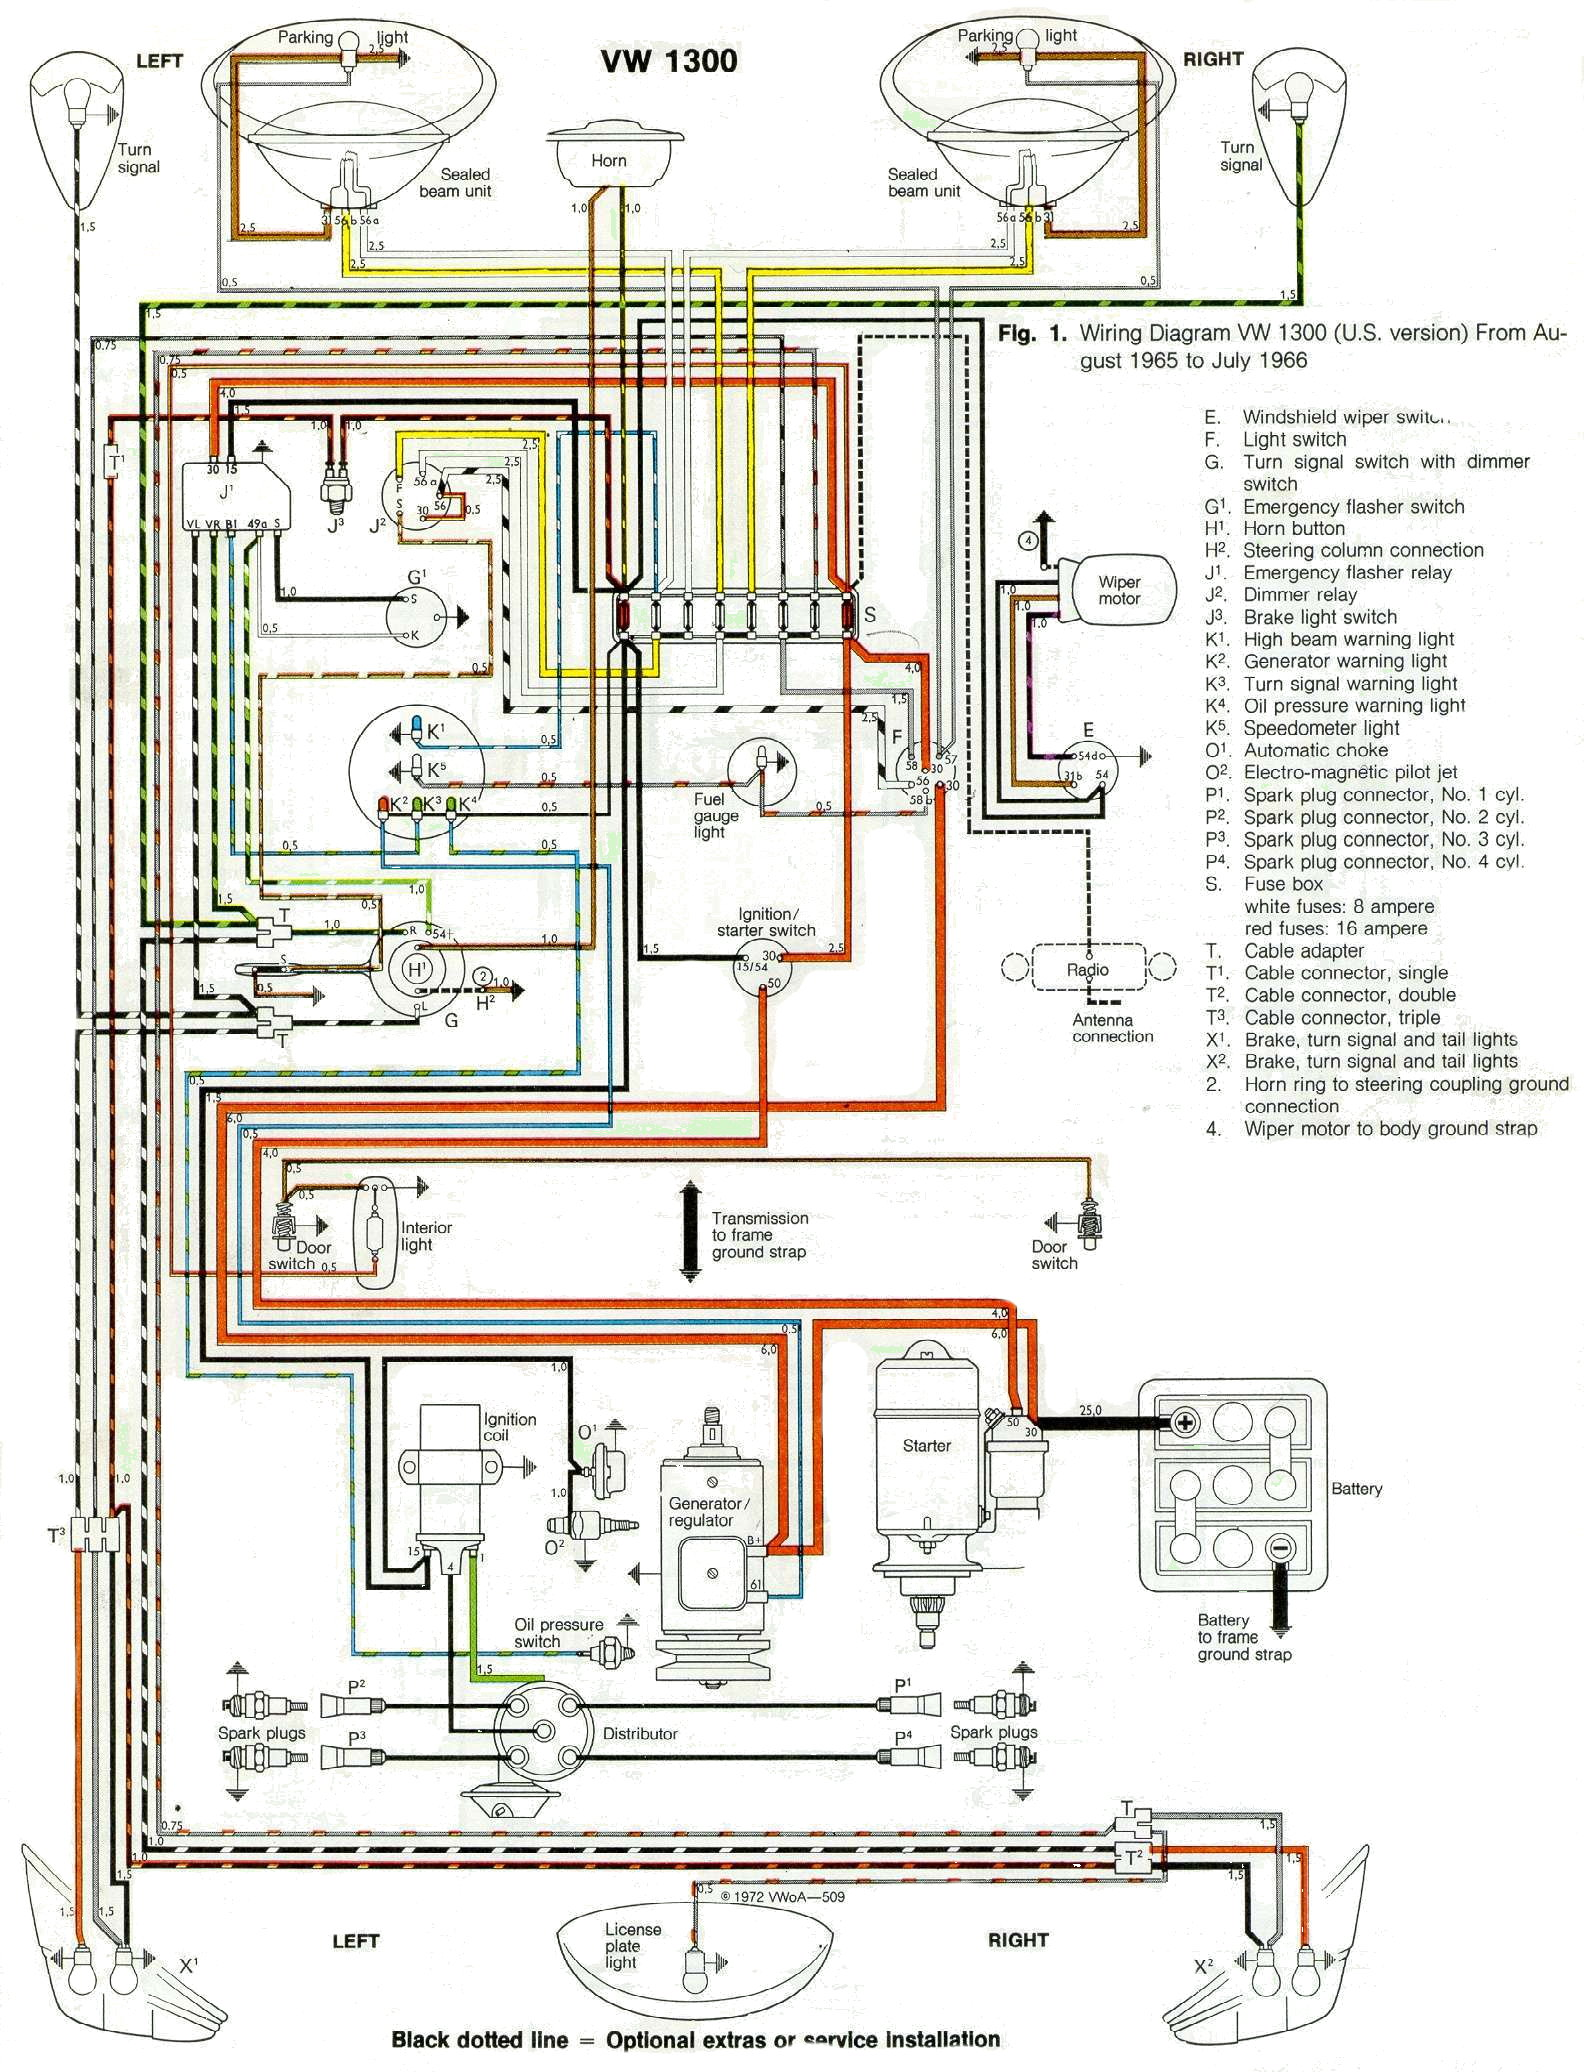 1999 vw beetle relay diagram 1999 image wiring diagram new beetle starter wiring diagram new auto wiring diagram schematic on 1999 vw beetle relay diagram